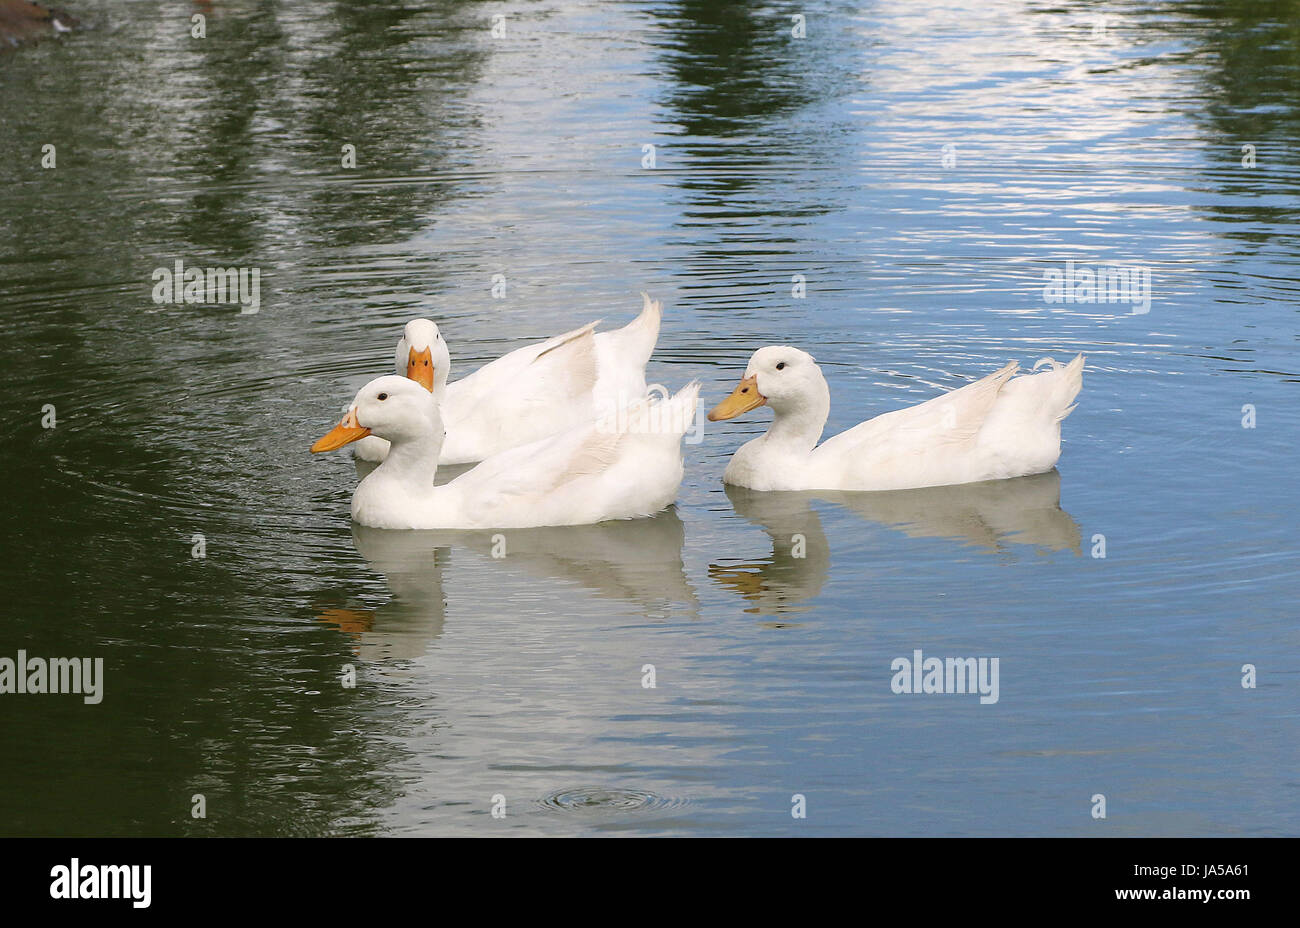 June 4, 2017 - The Pekin or Peking, also White Pekin, is an American breed of domestic duck - Stock Image